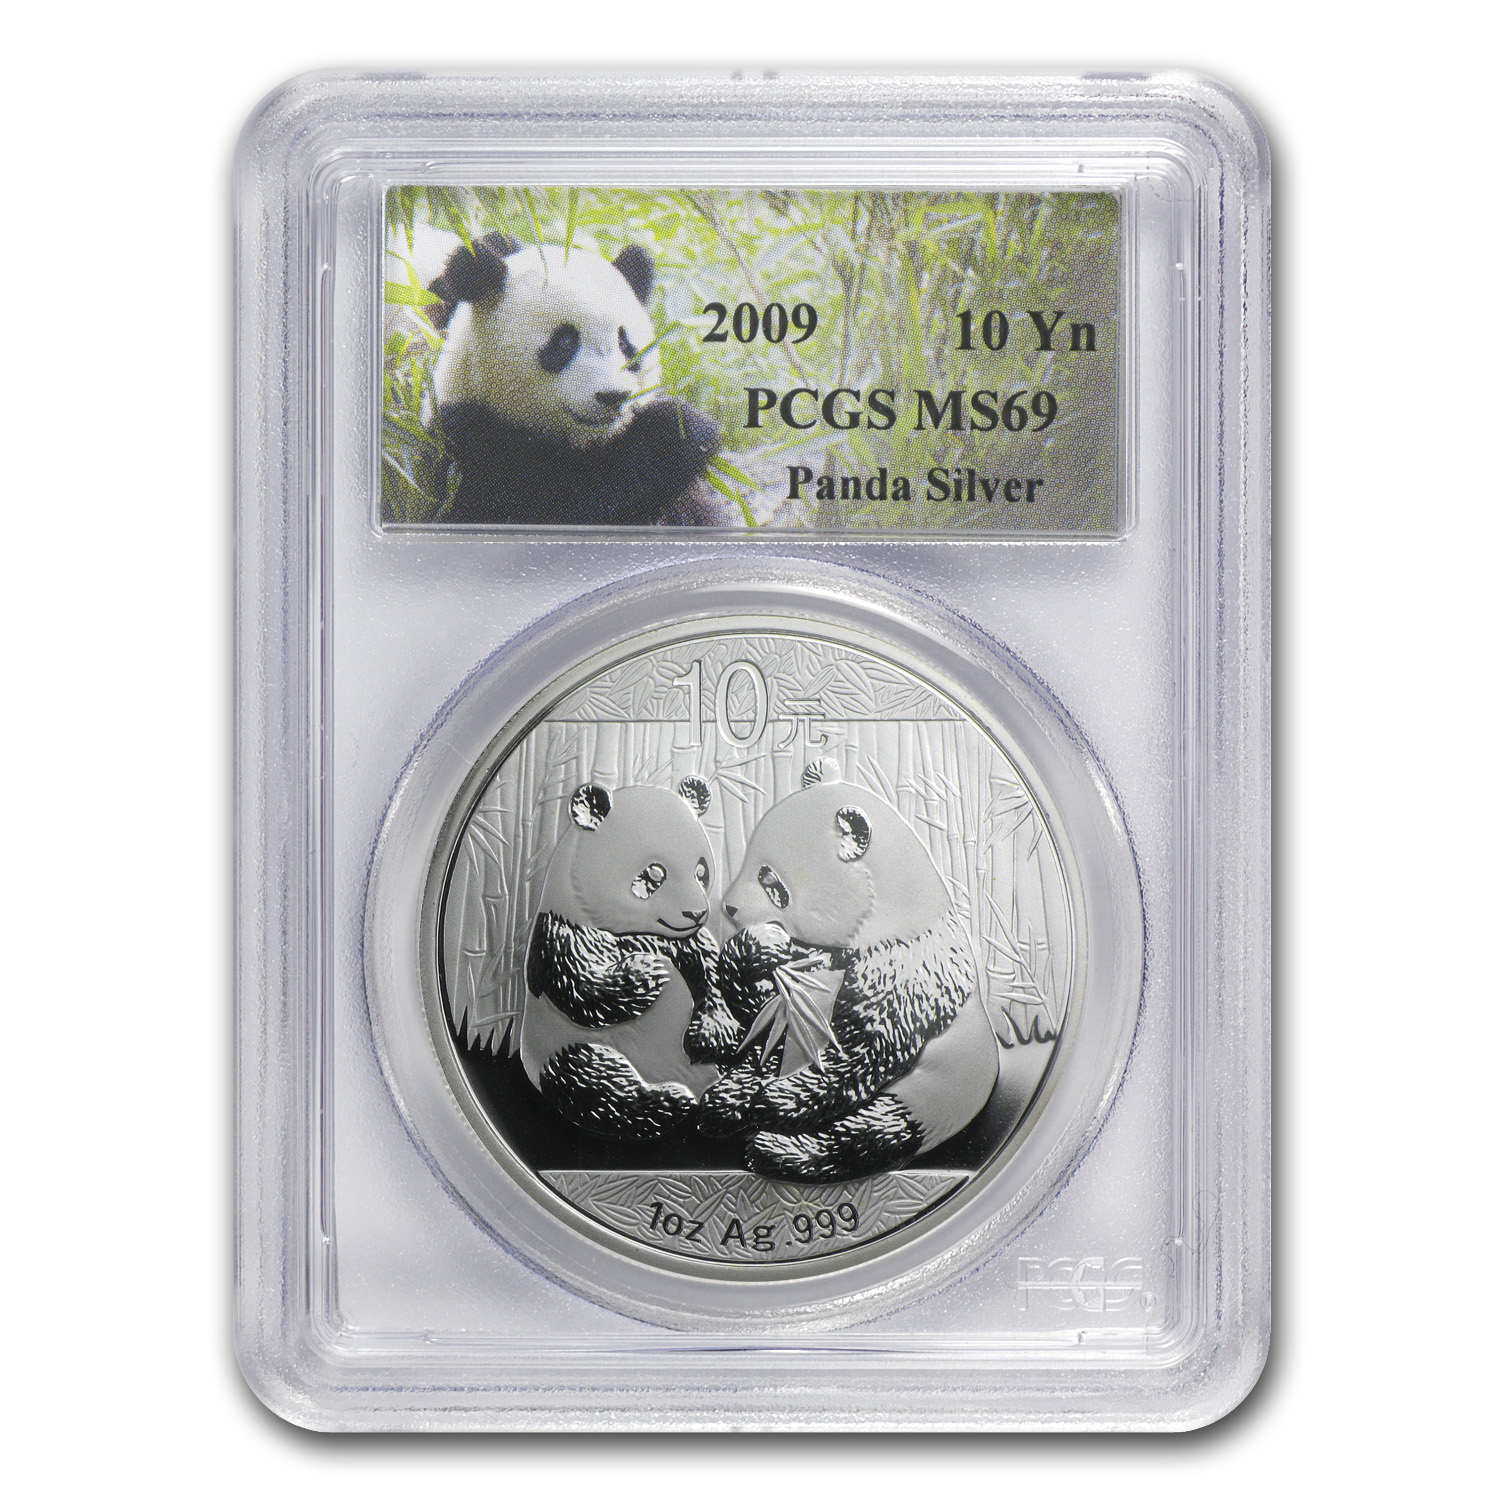 2009 China 1 oz Silver Panda MS-69 PCGS